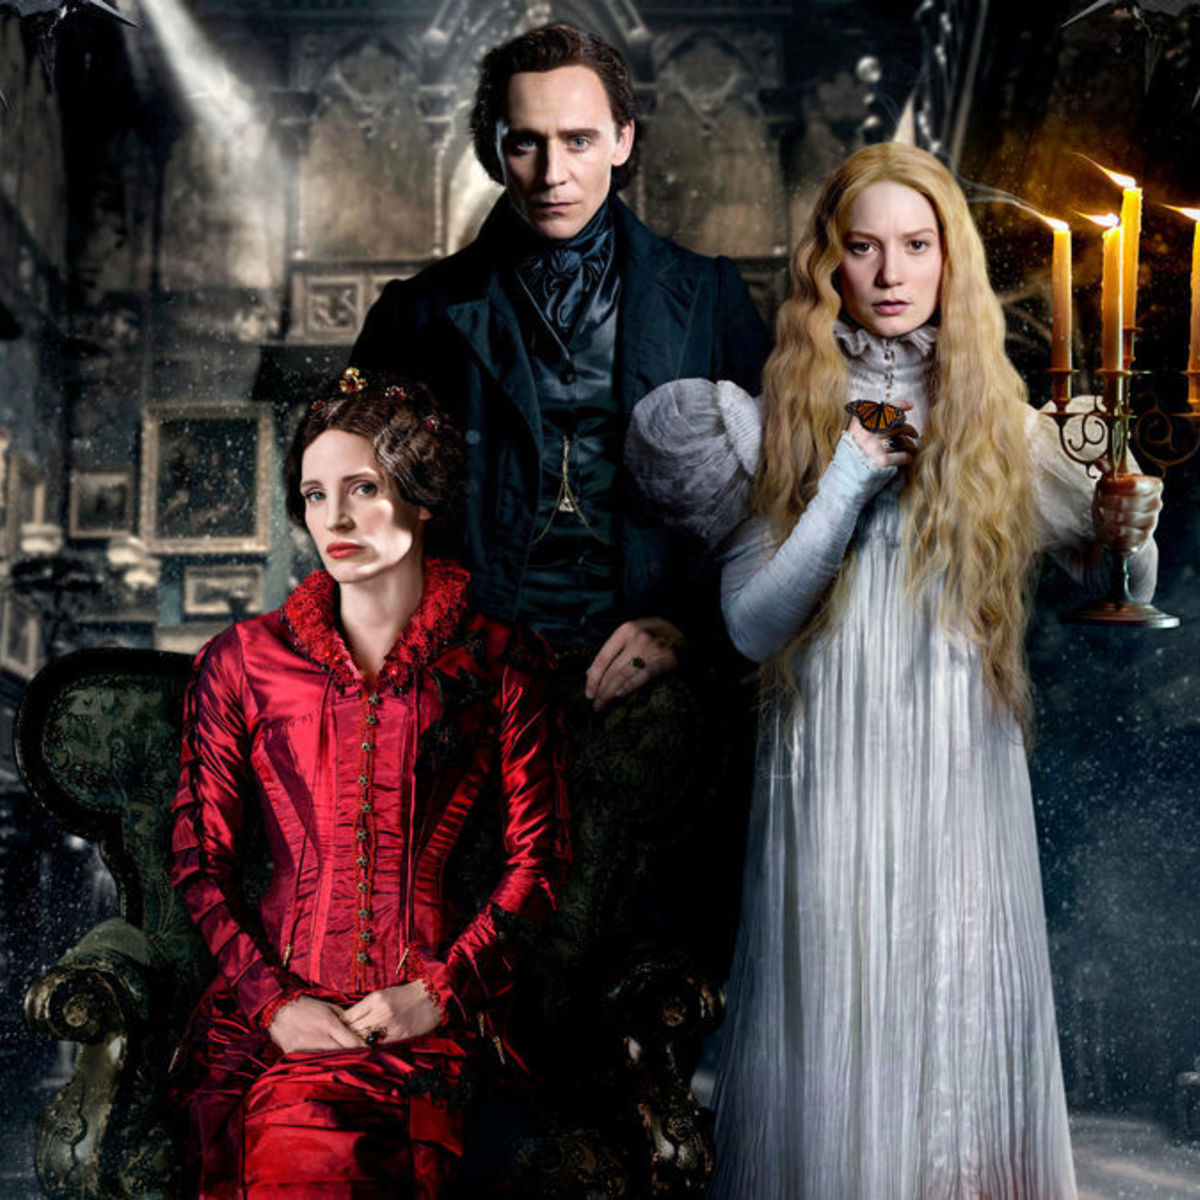 The creators of the movie Crimson Peak: actors and roles